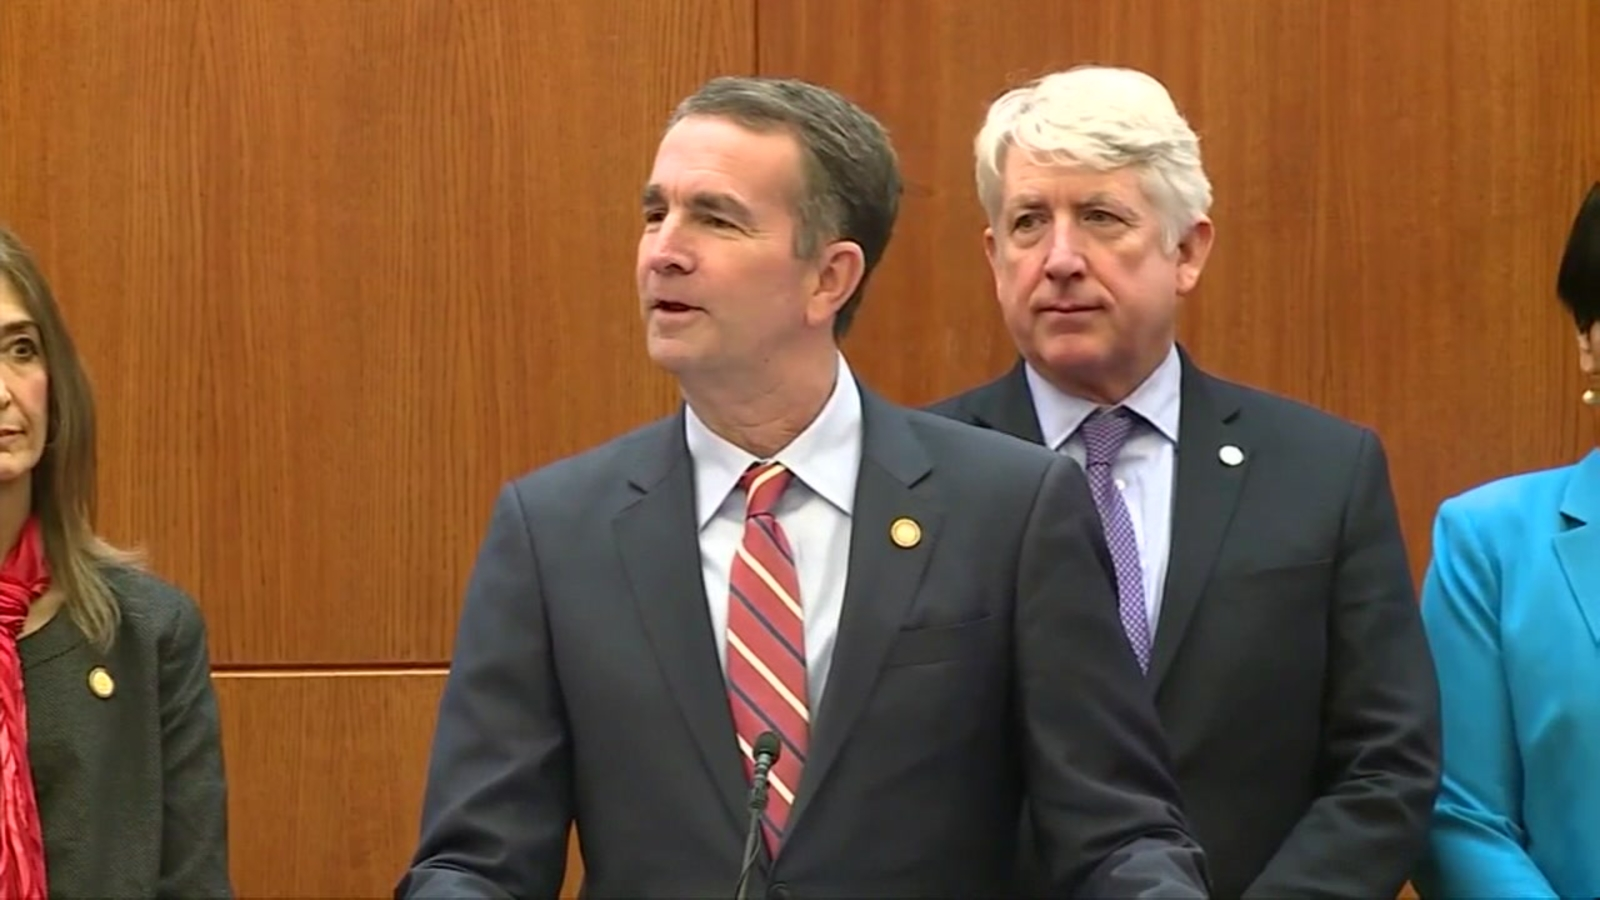 Virginia Gov. Ralph Northam denies being in racist photo, sources say | abc13.com